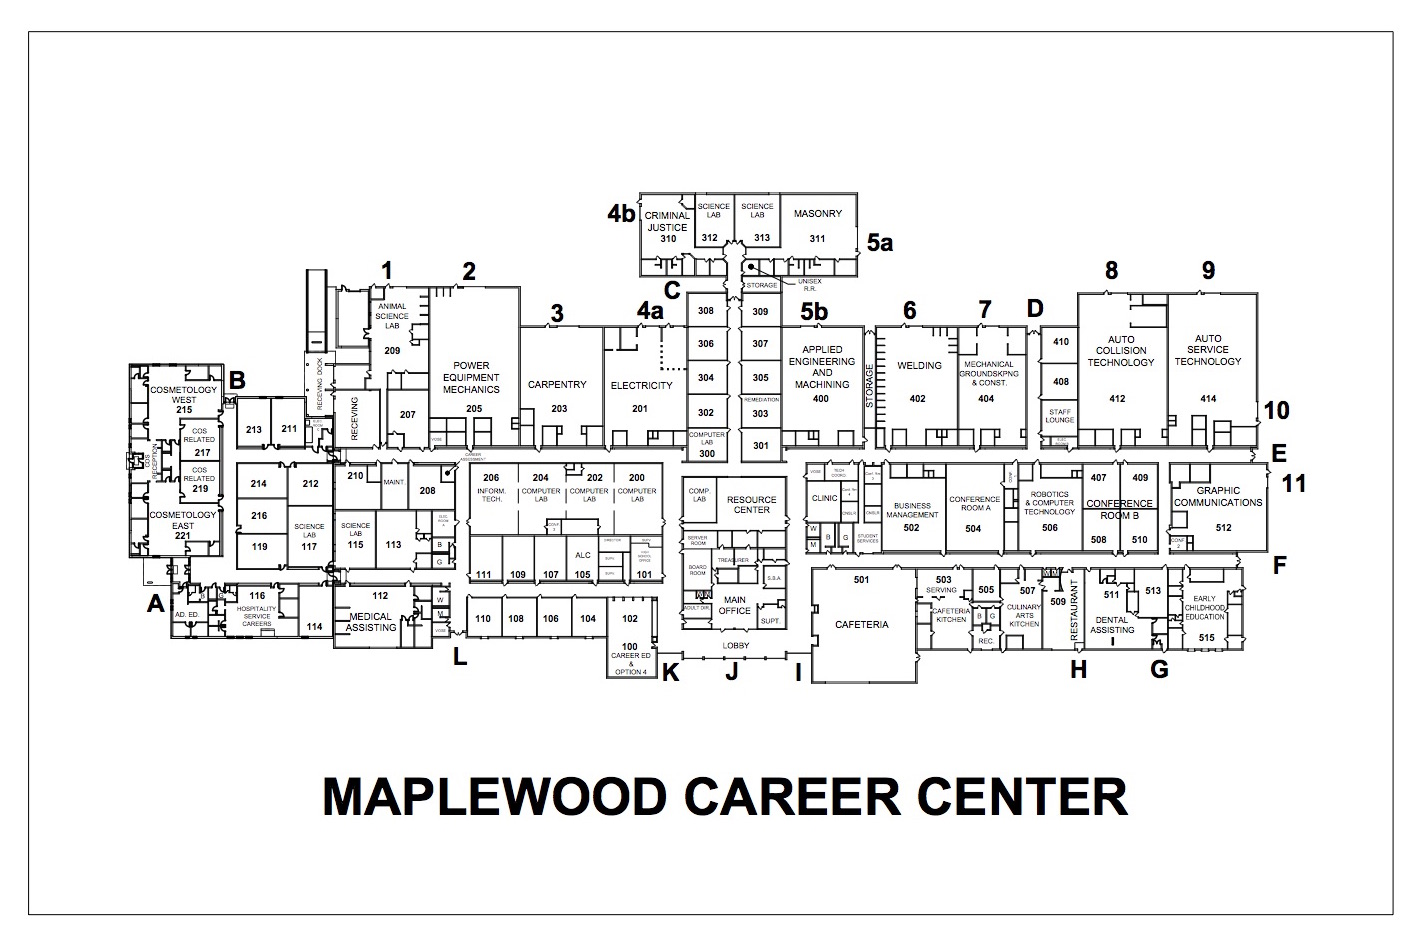 Maplewood Career Center Map